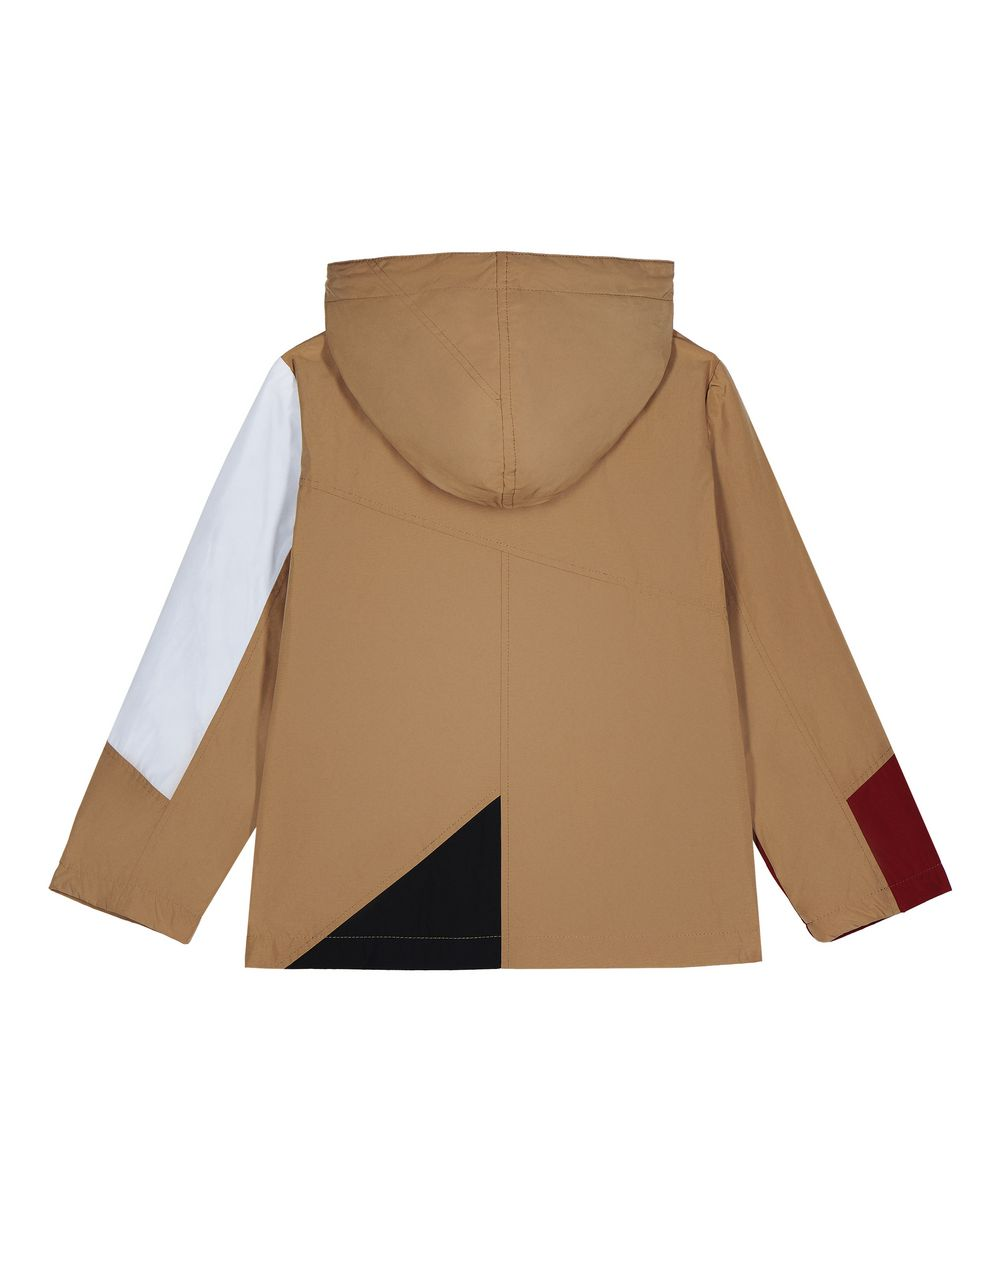 BEIGE COLOR-BLOCK PARKA   - Lanvin